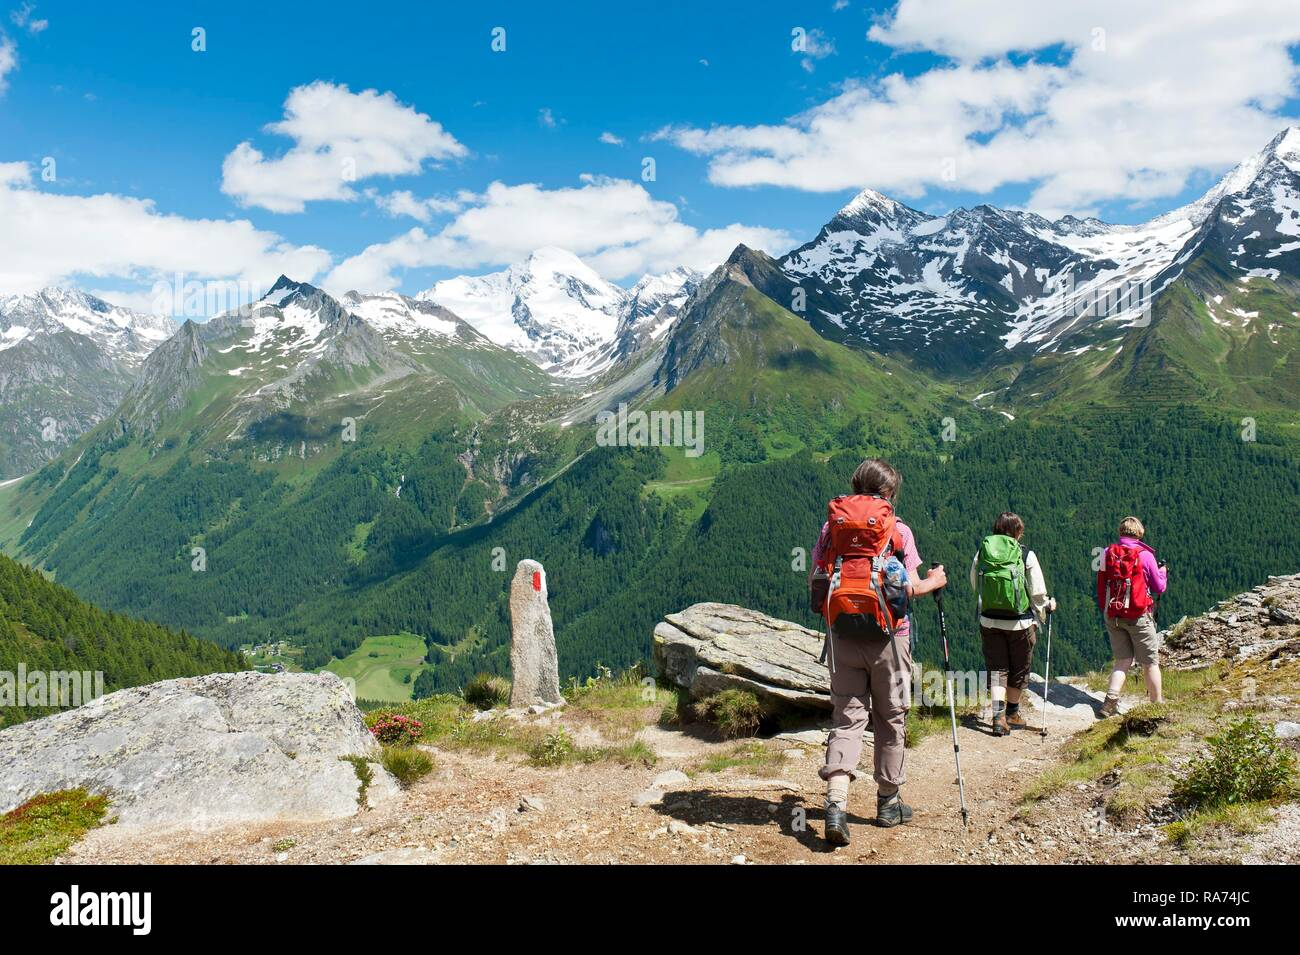 Three hikers hike on a hiking trail, red and white markings on stone, snow-covered mountains, near the Waldner Alm, Kasern - Stock Image